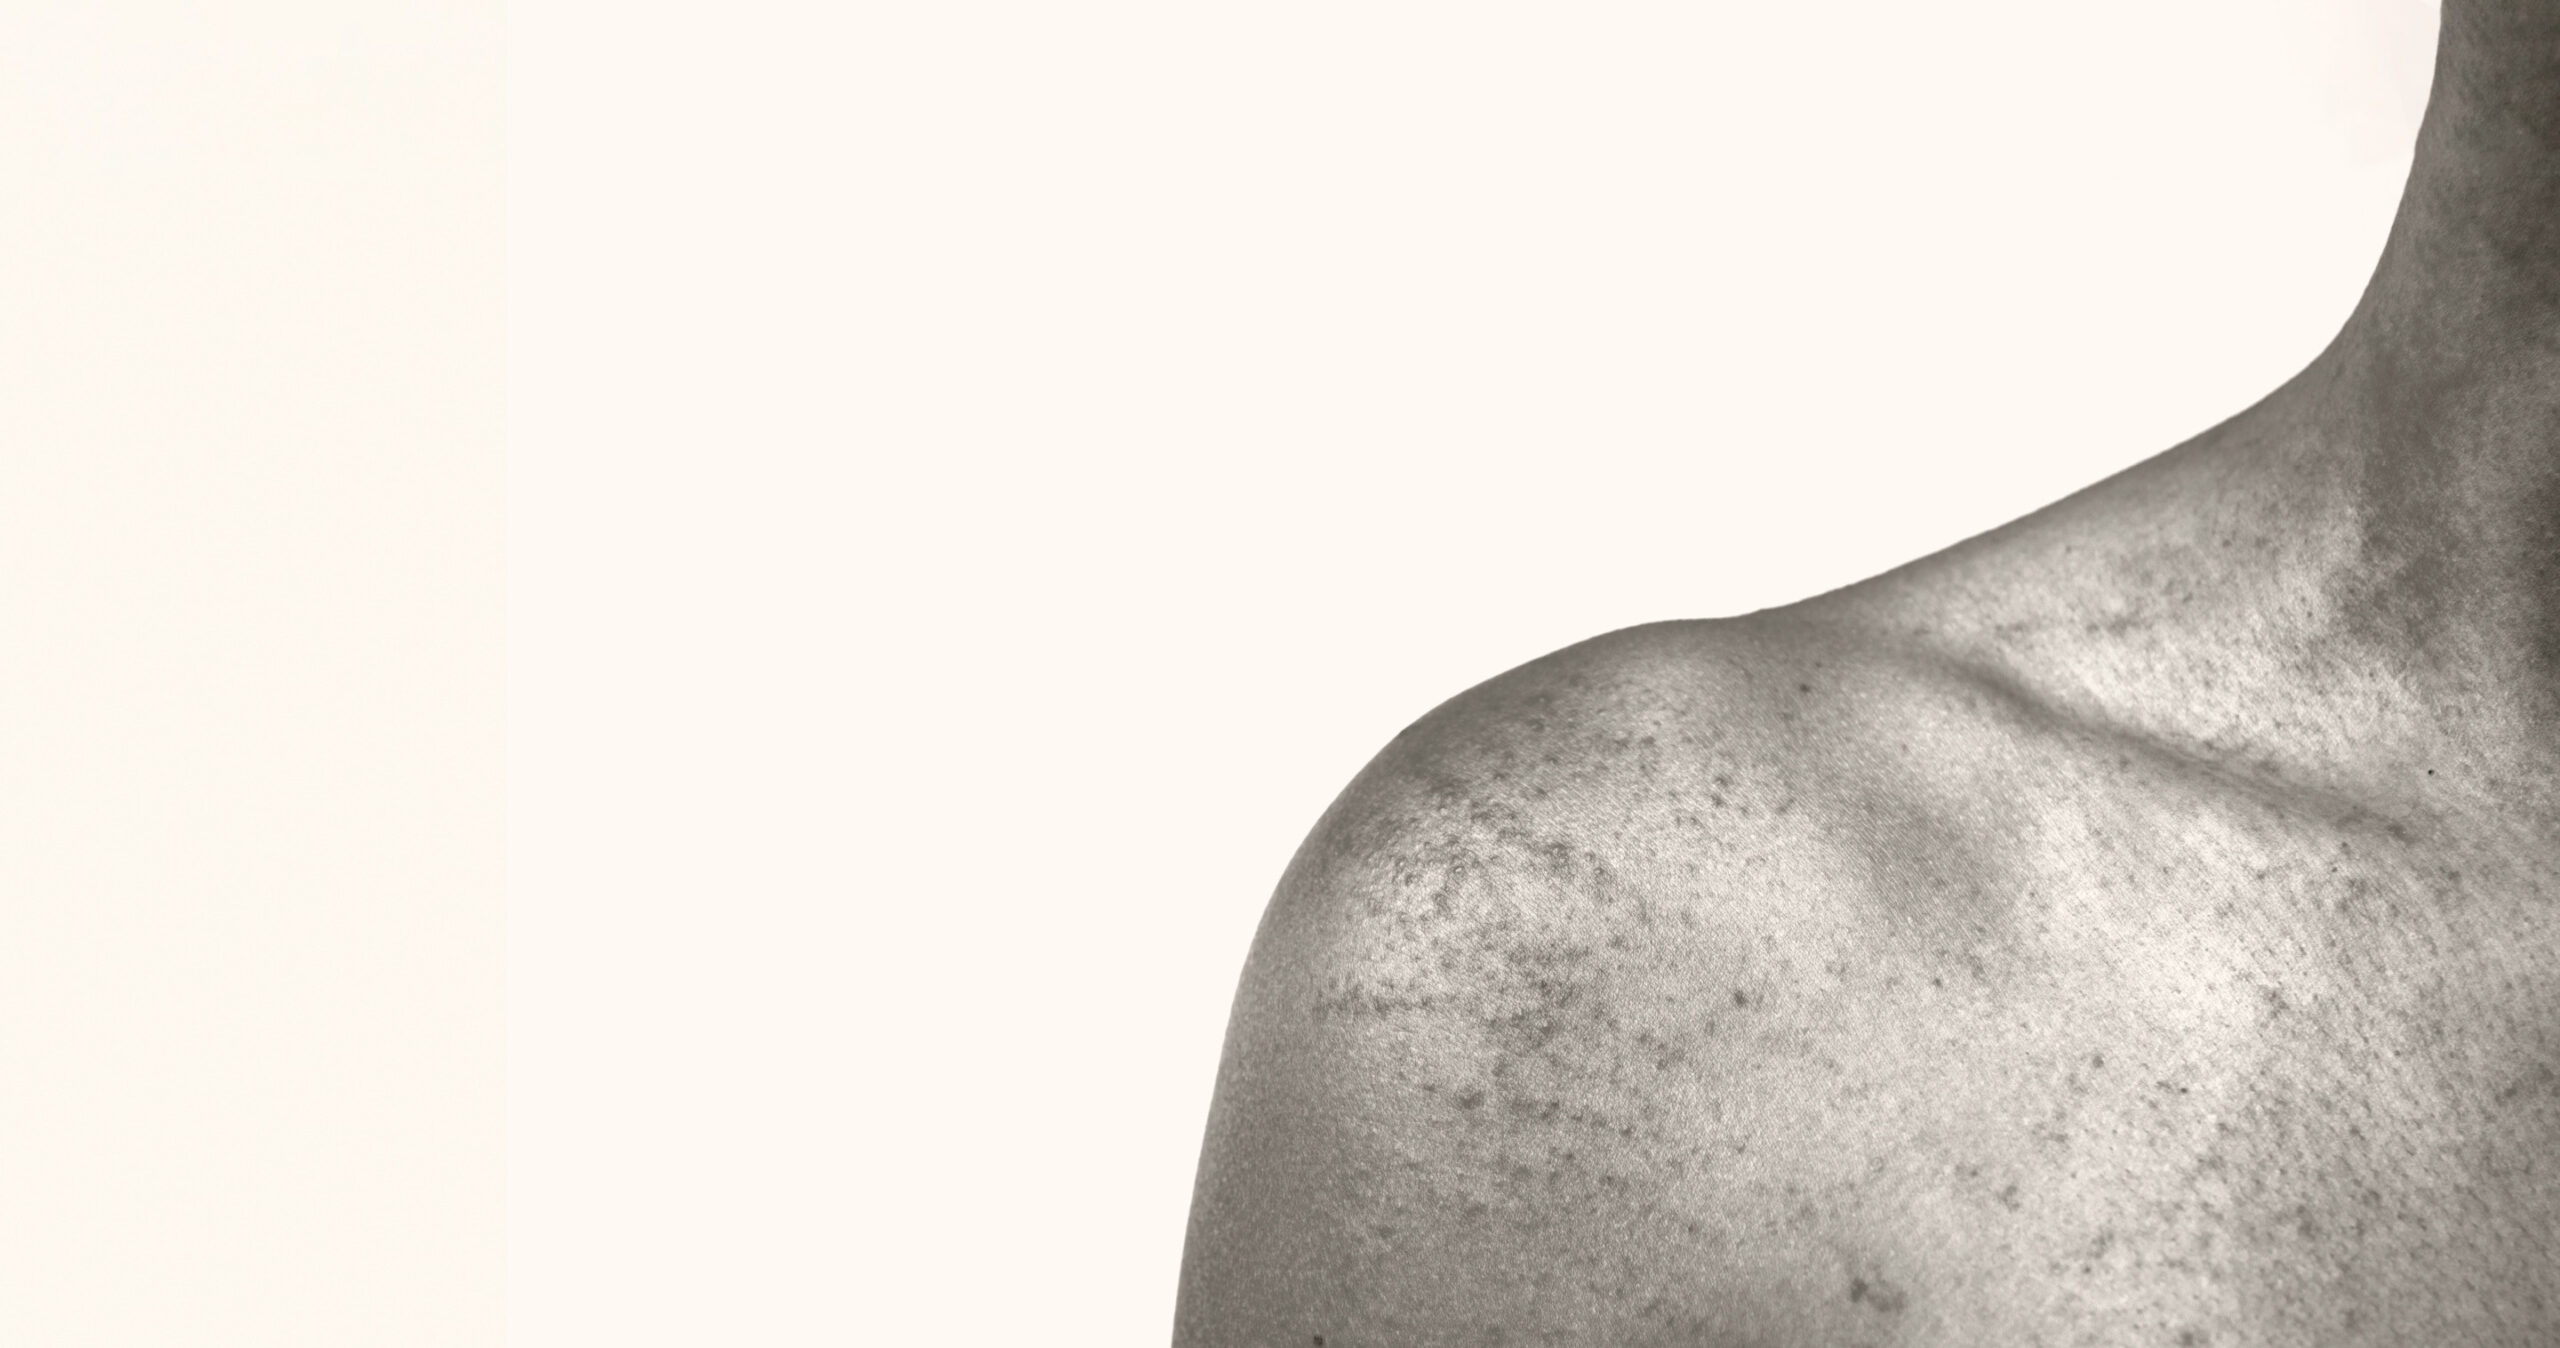 Patient with atopic dermatitis on their bare shoulder